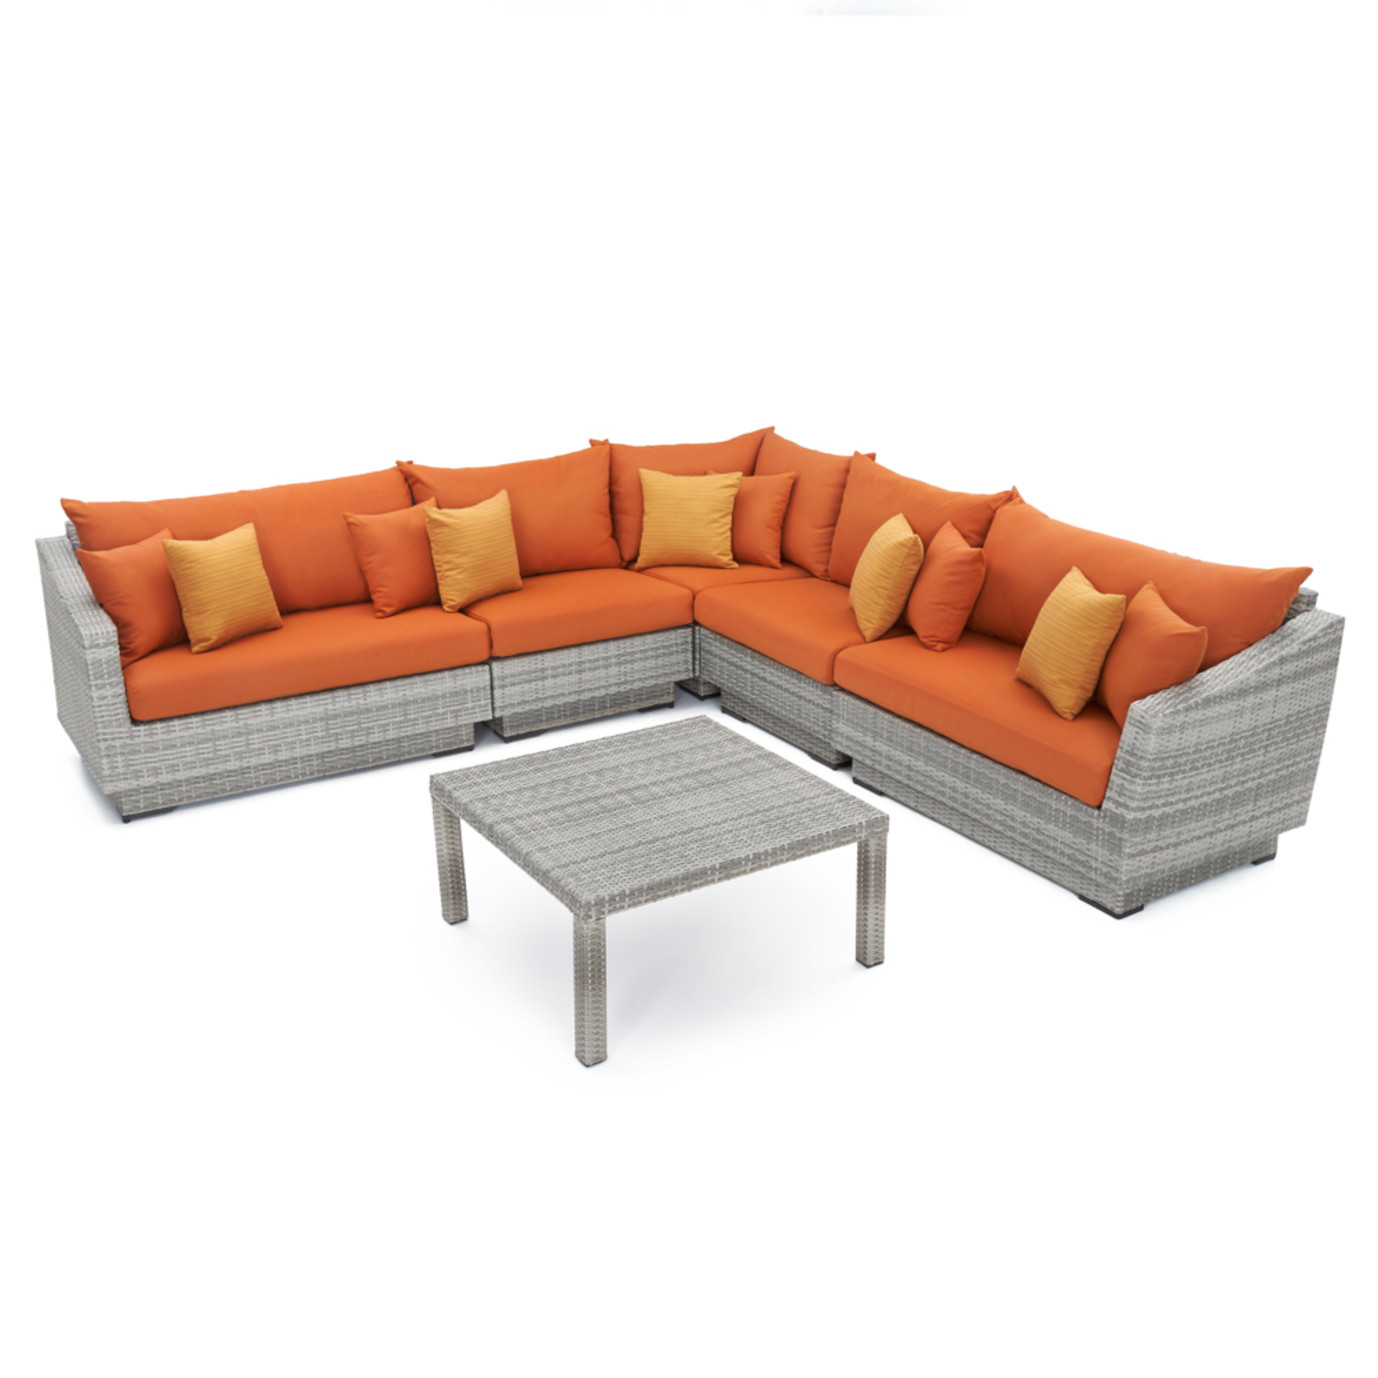 Cannes™ 6pc Sectional & Table - Tikka Orange